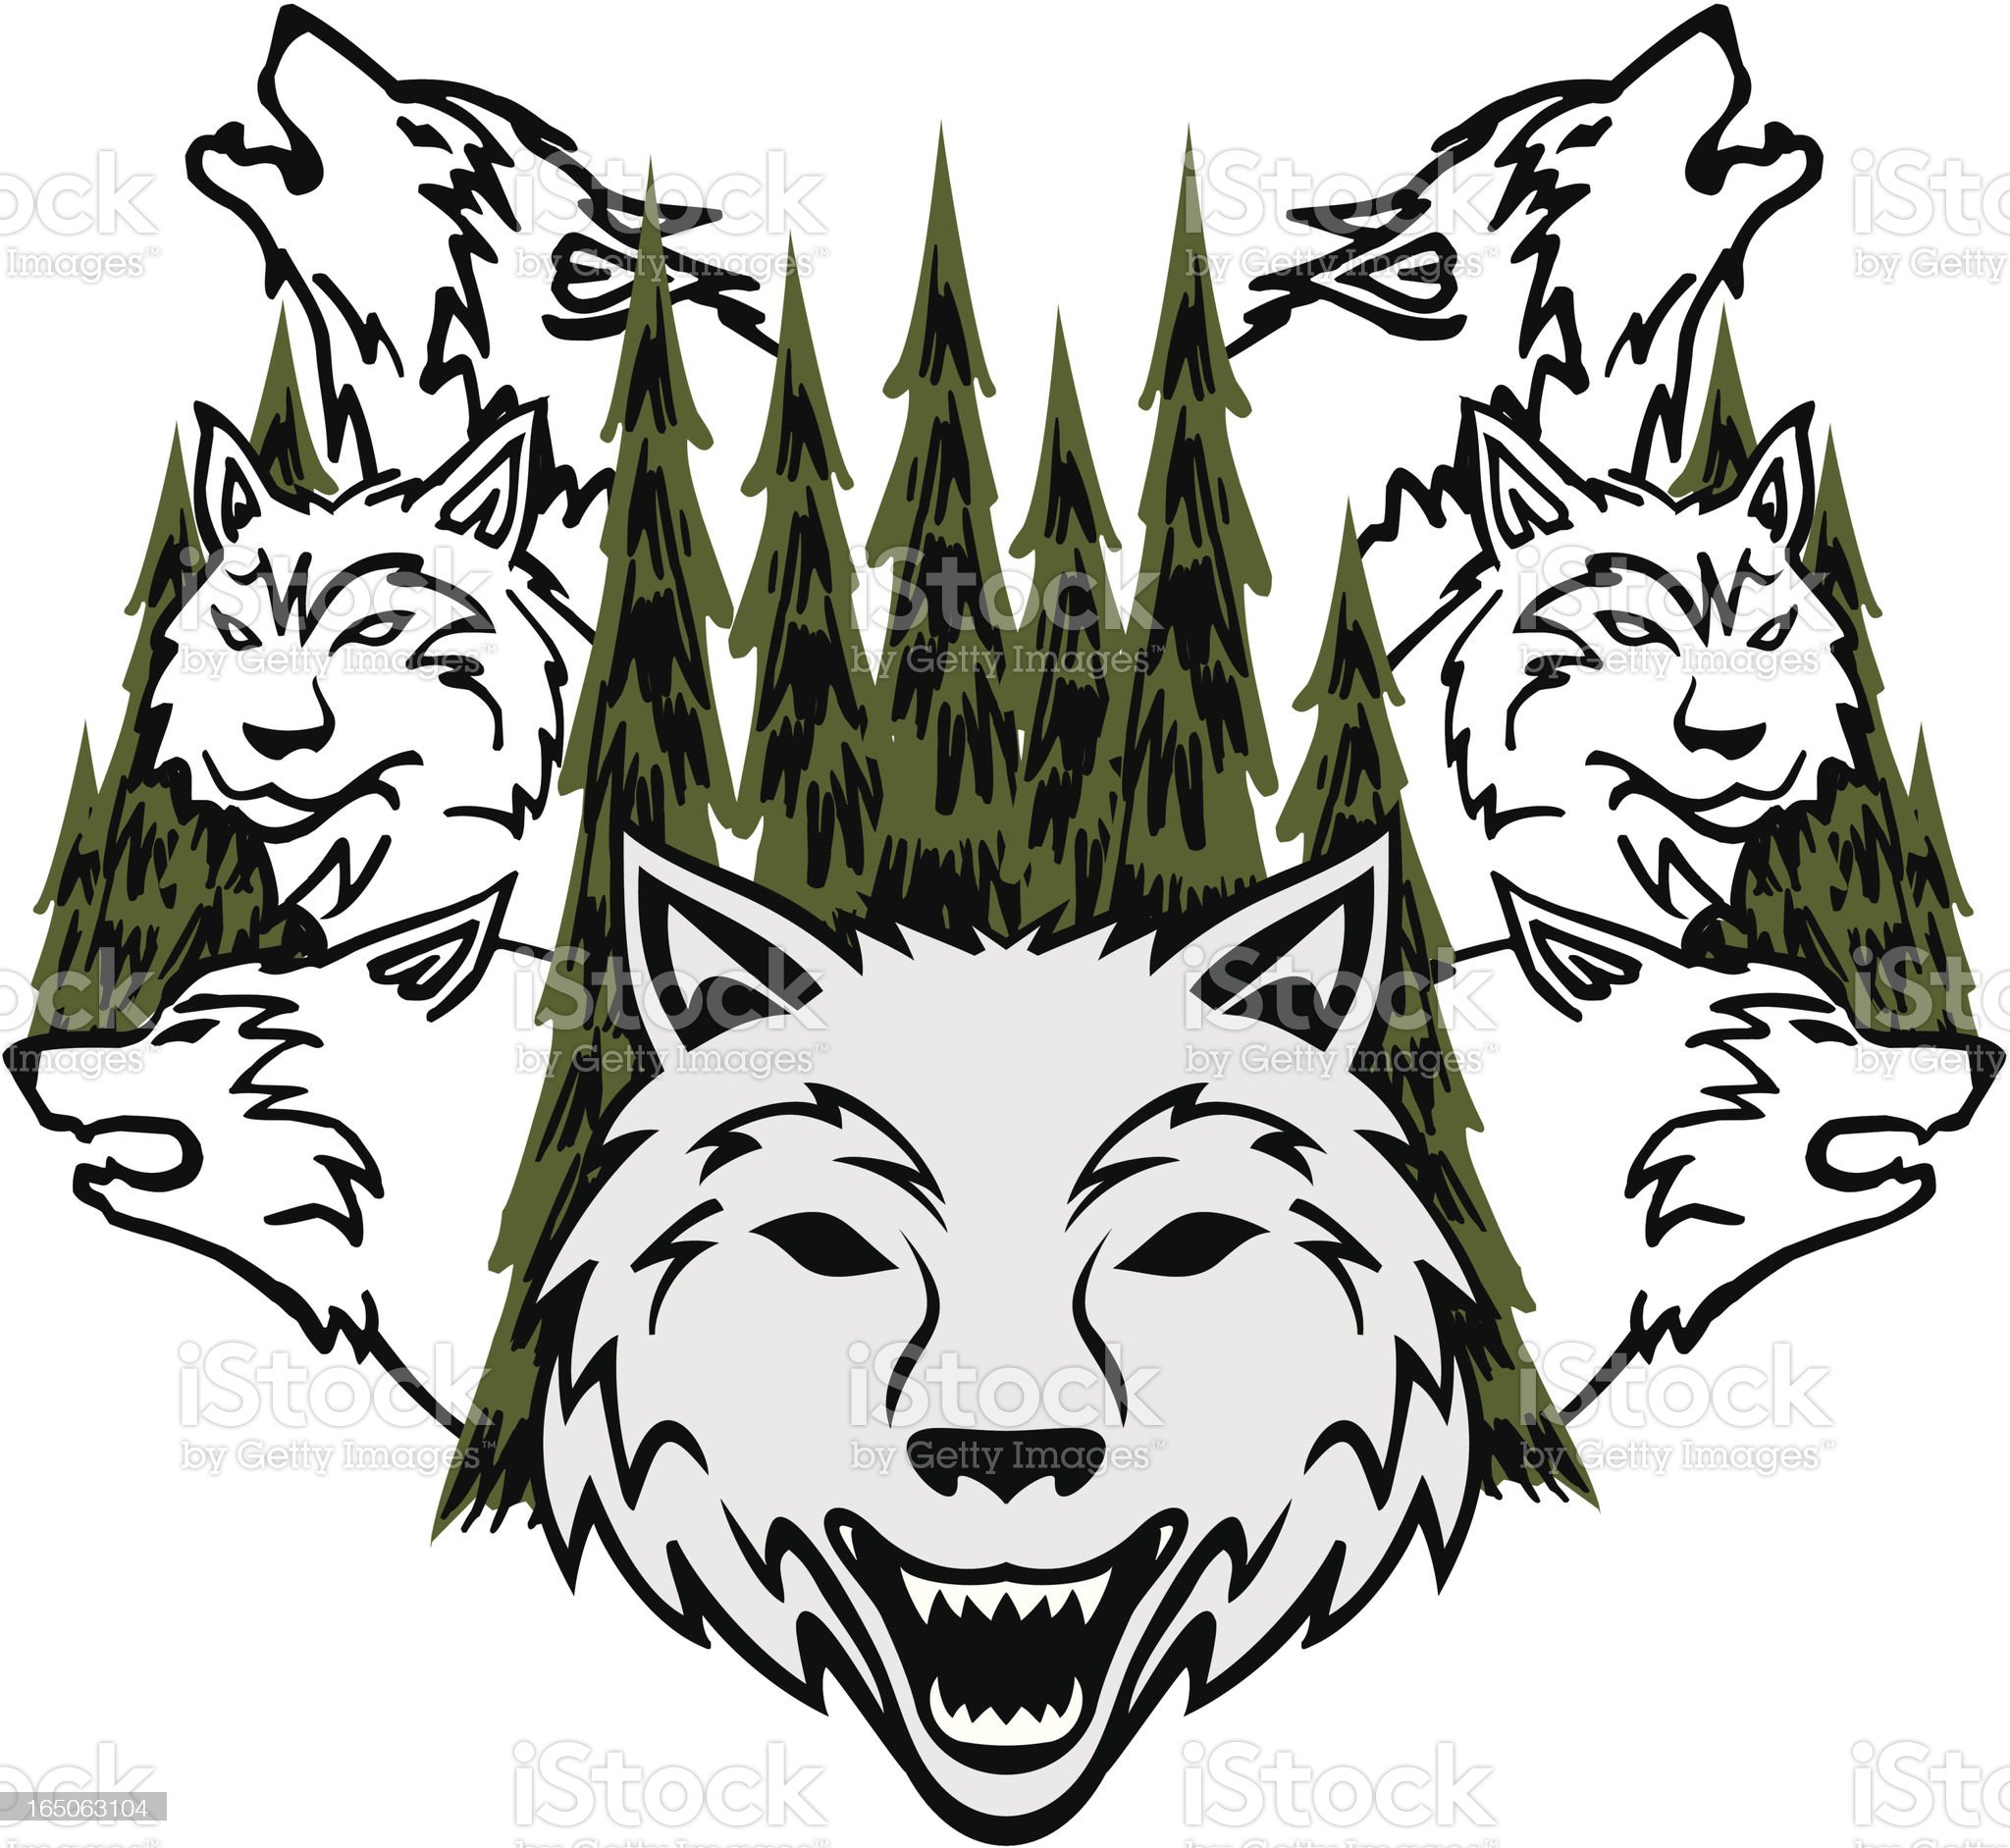 Wolves and Trees royalty-free stock vector art